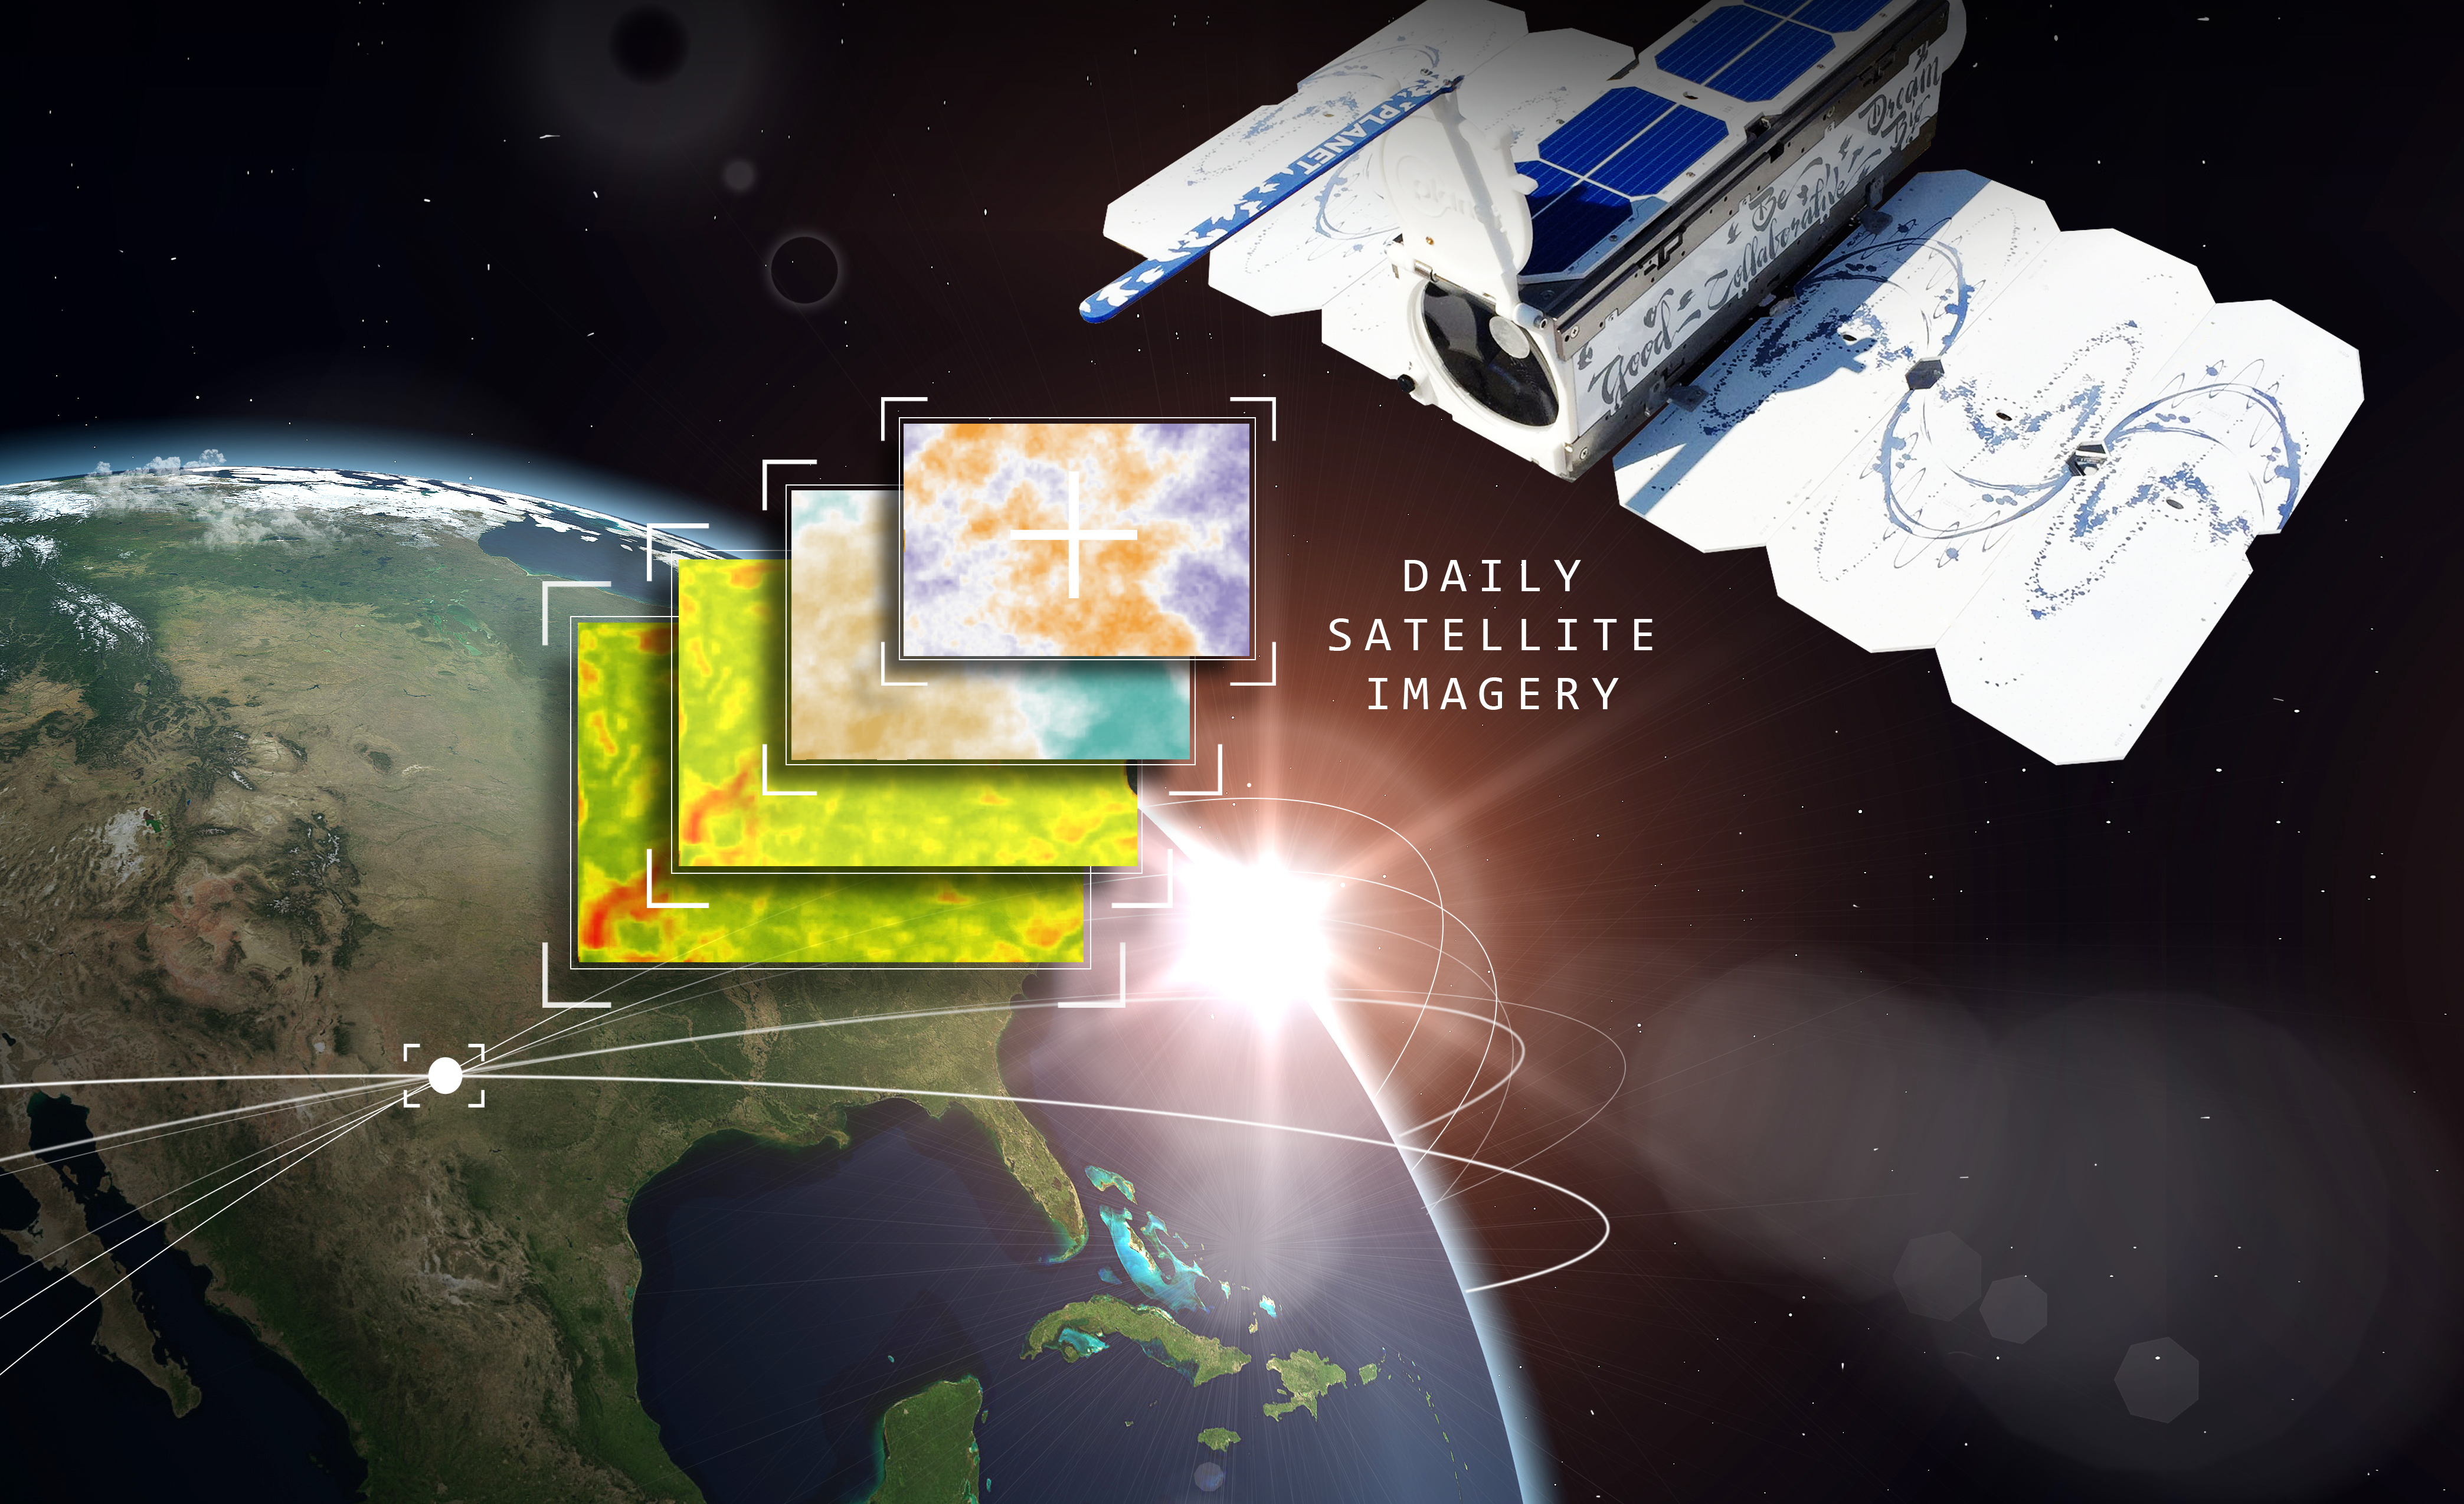 Farmers Edge and Planet Partner to Utilize Daily Satellite Imagery